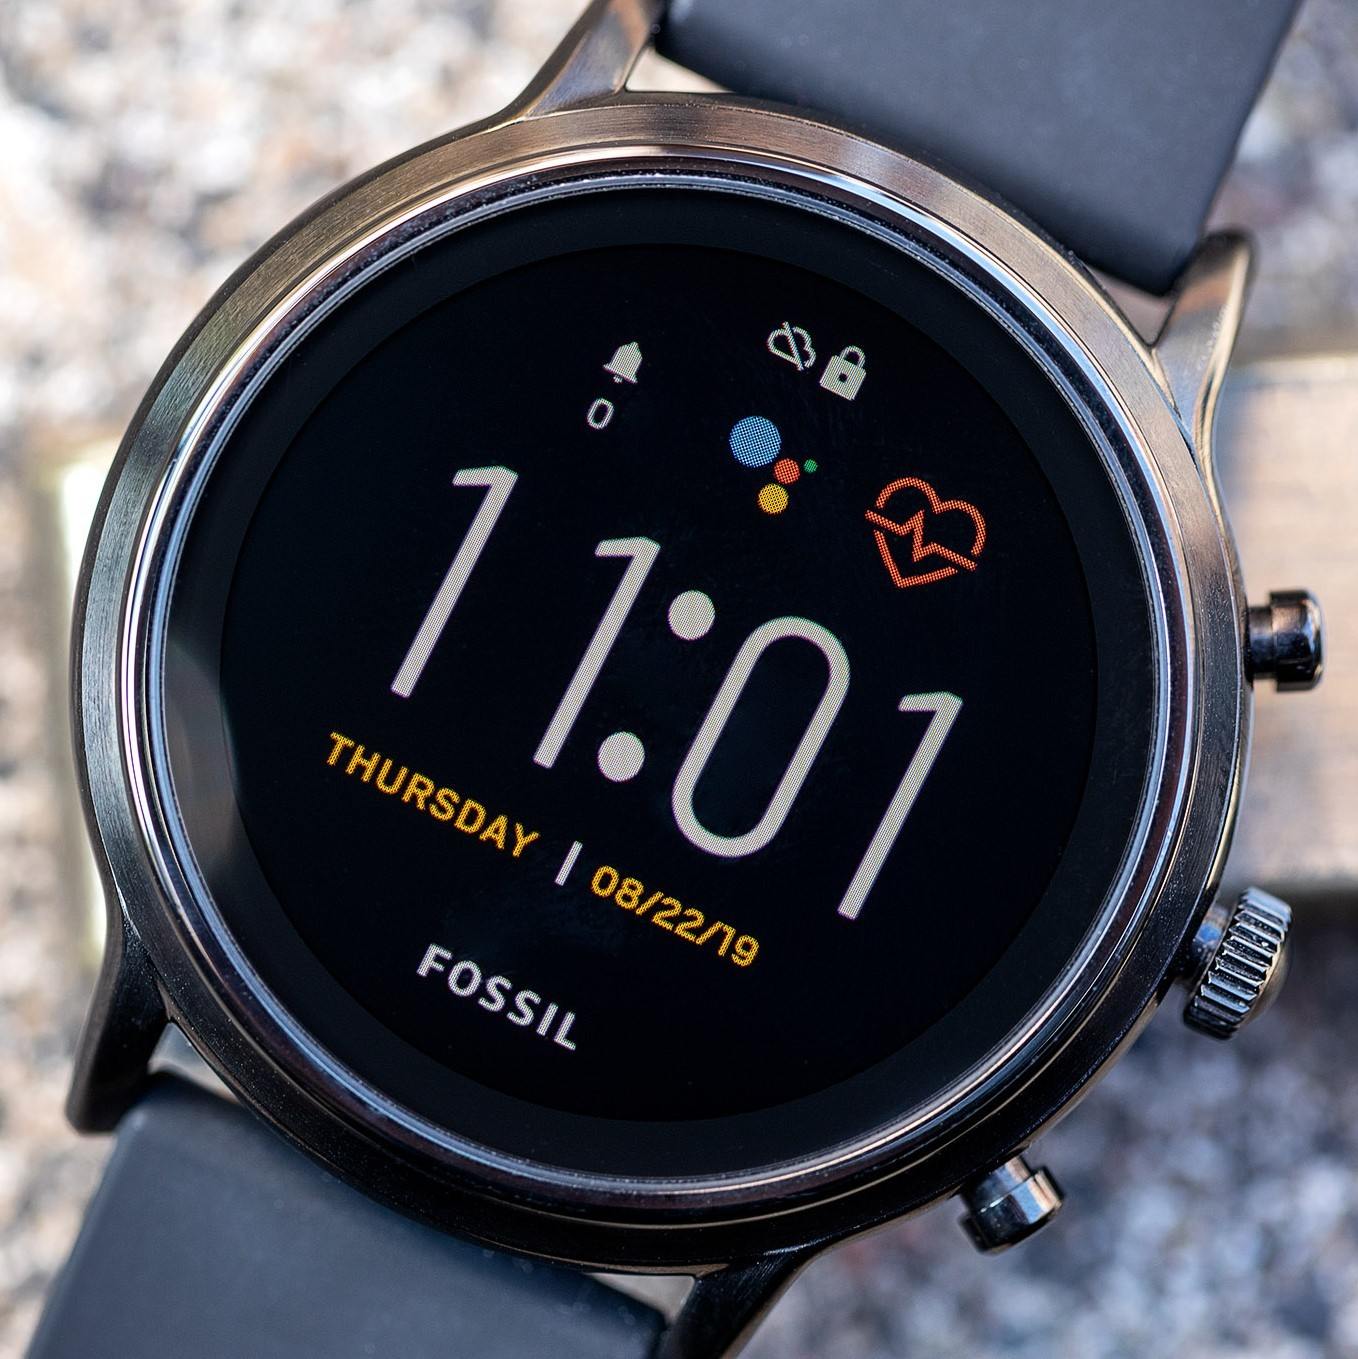 Most Popular Smartwatches